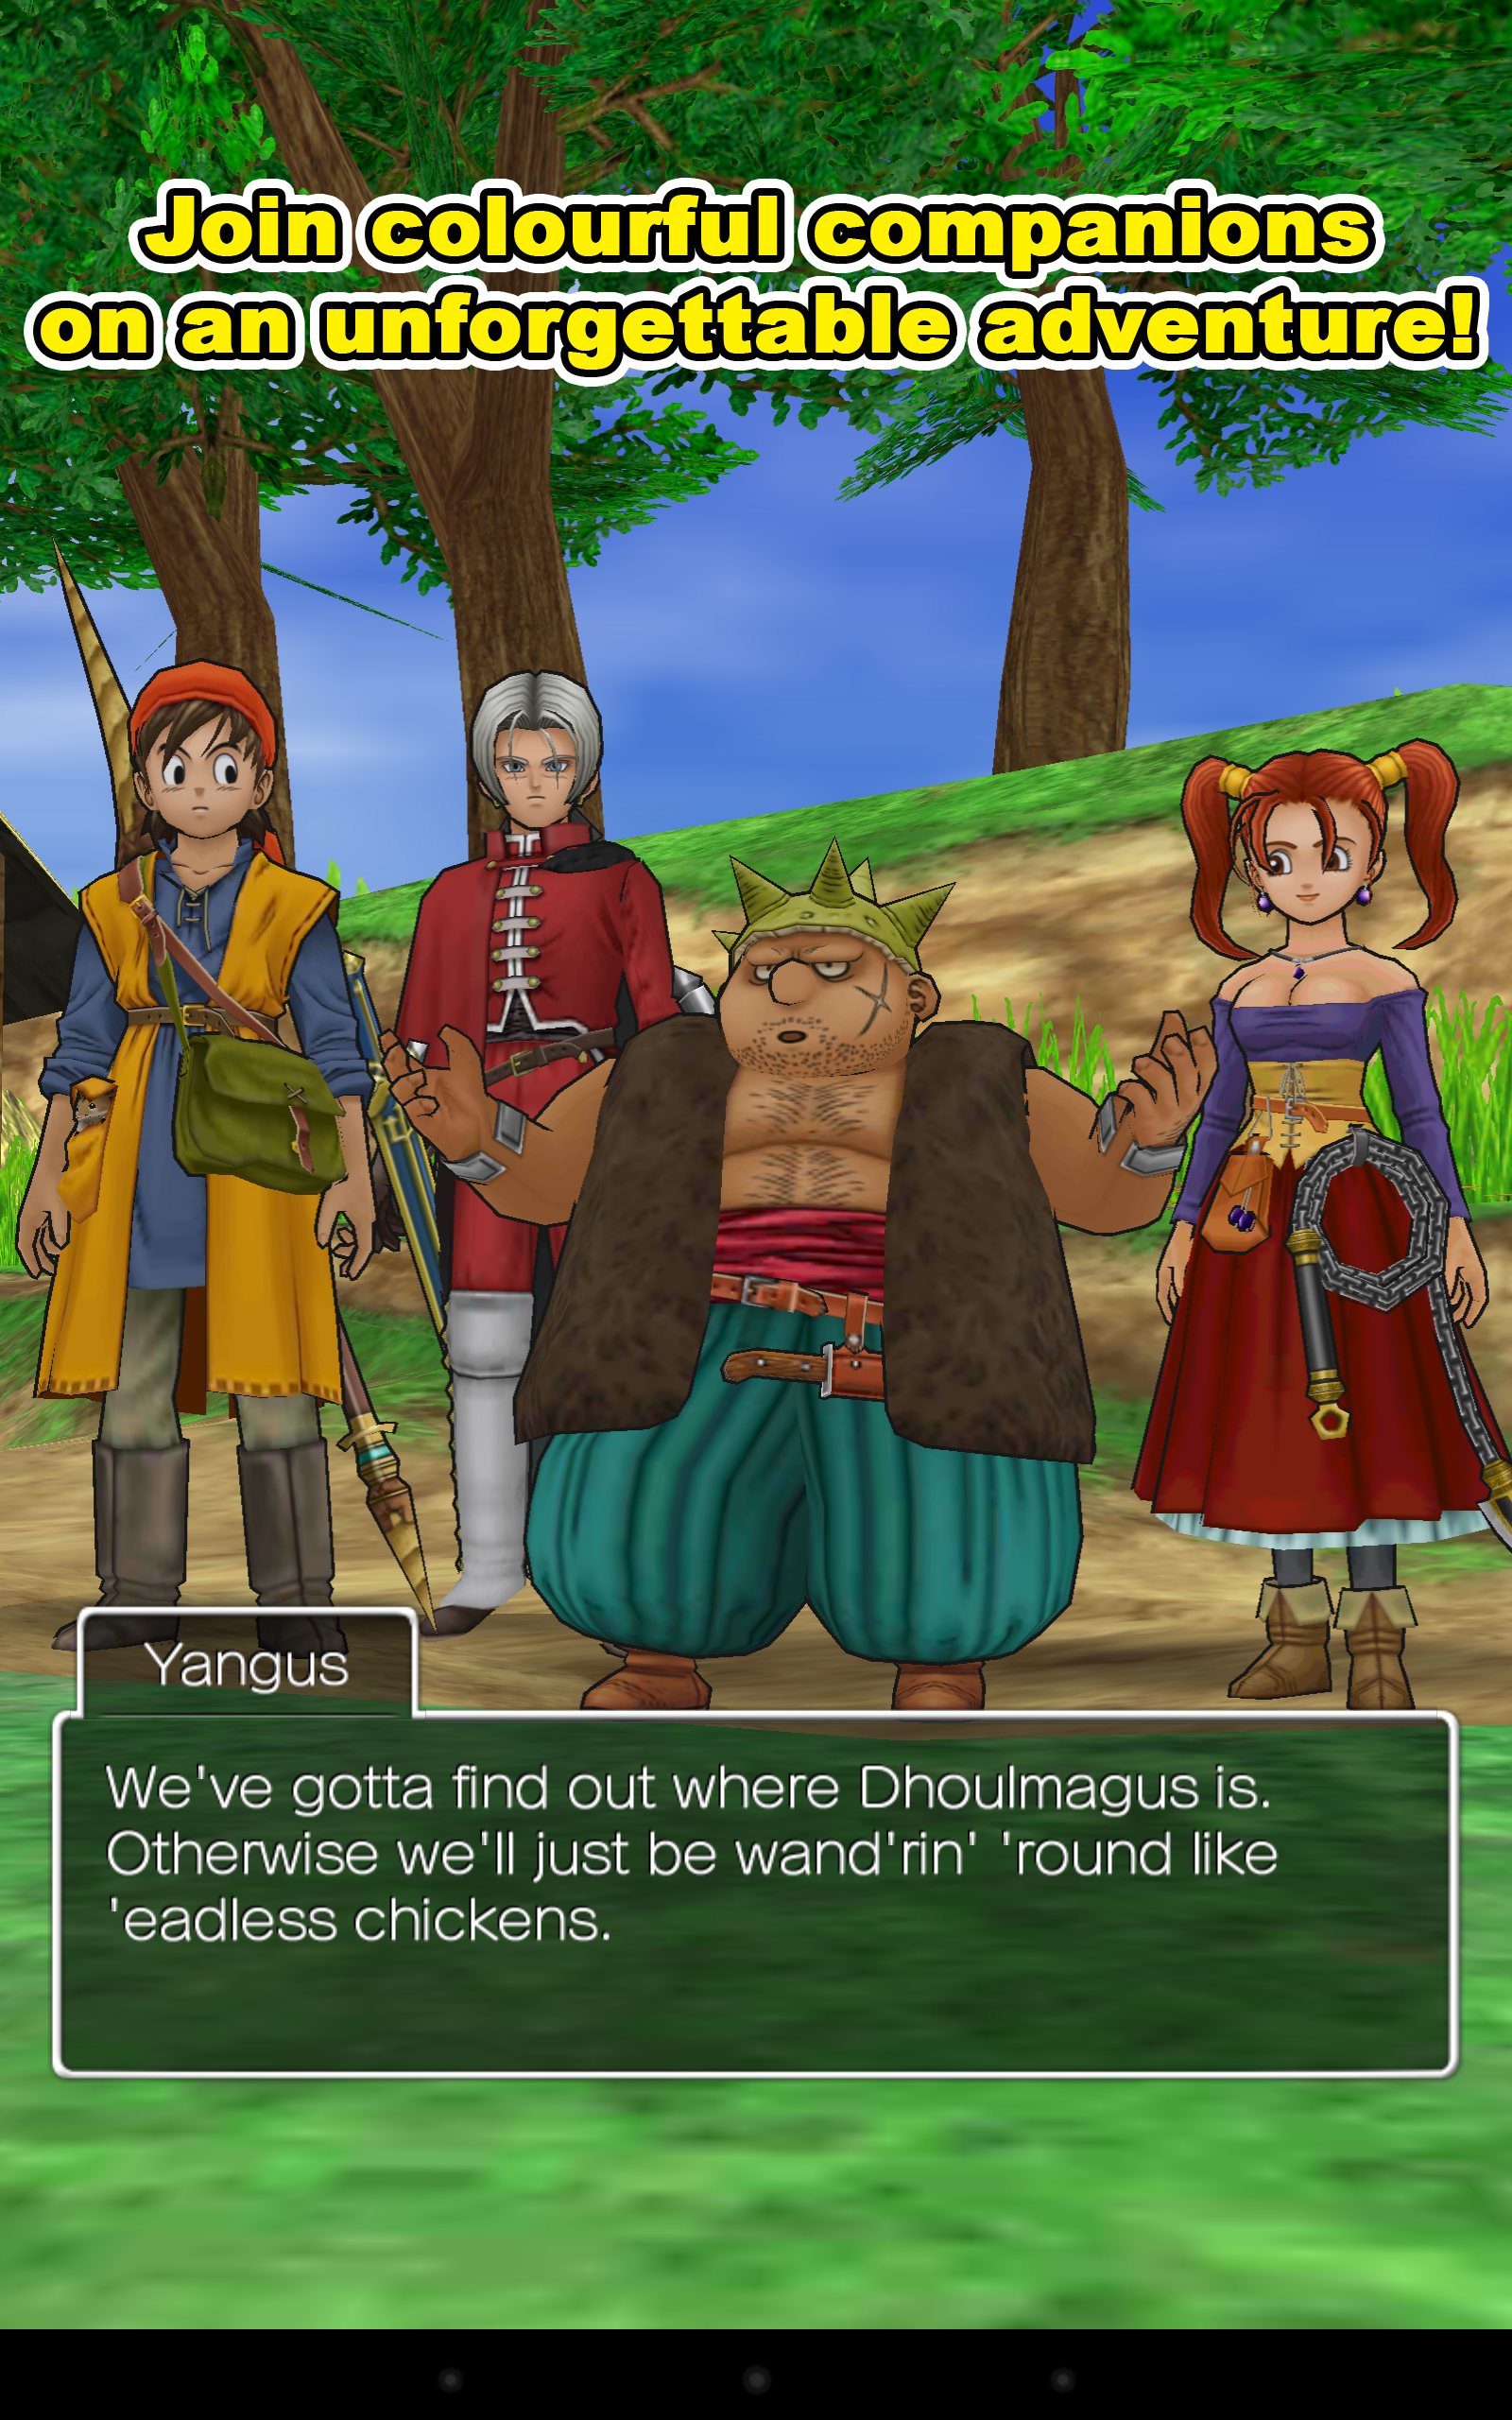 New Game] Square Enix Releases JRPG Classic Dragon Quest VIII On